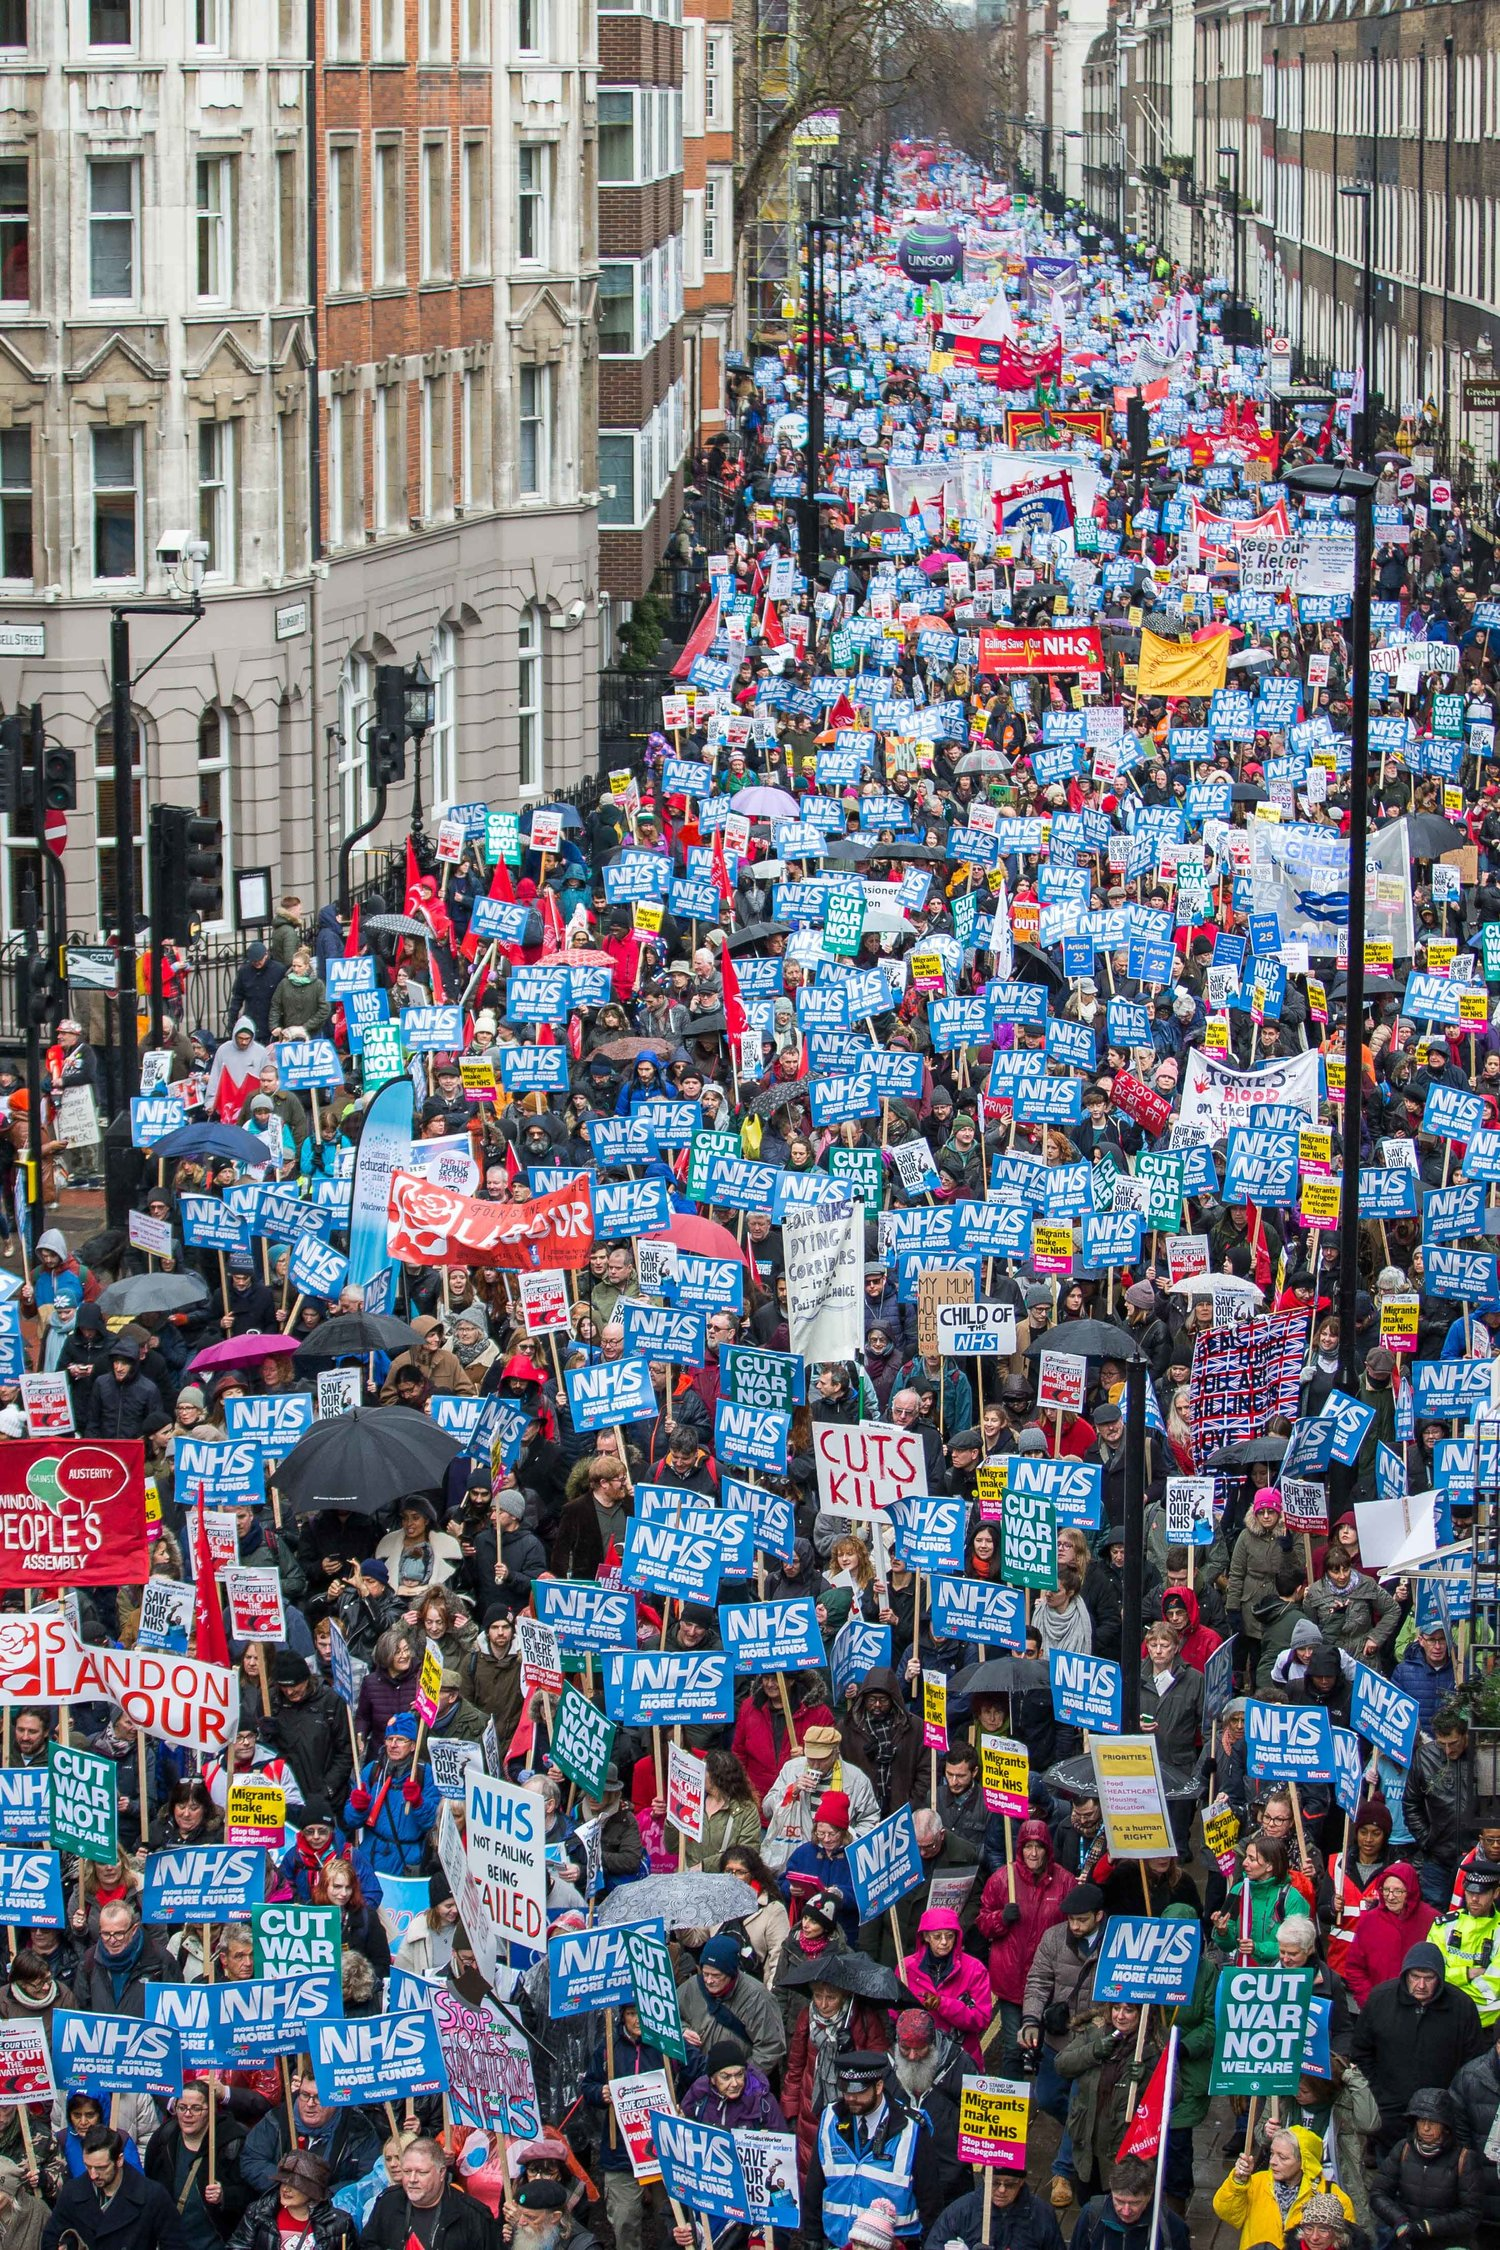 Thousands join the Fund Our NHS demonstration in central London, February 2018. London, England - February 3 2018.